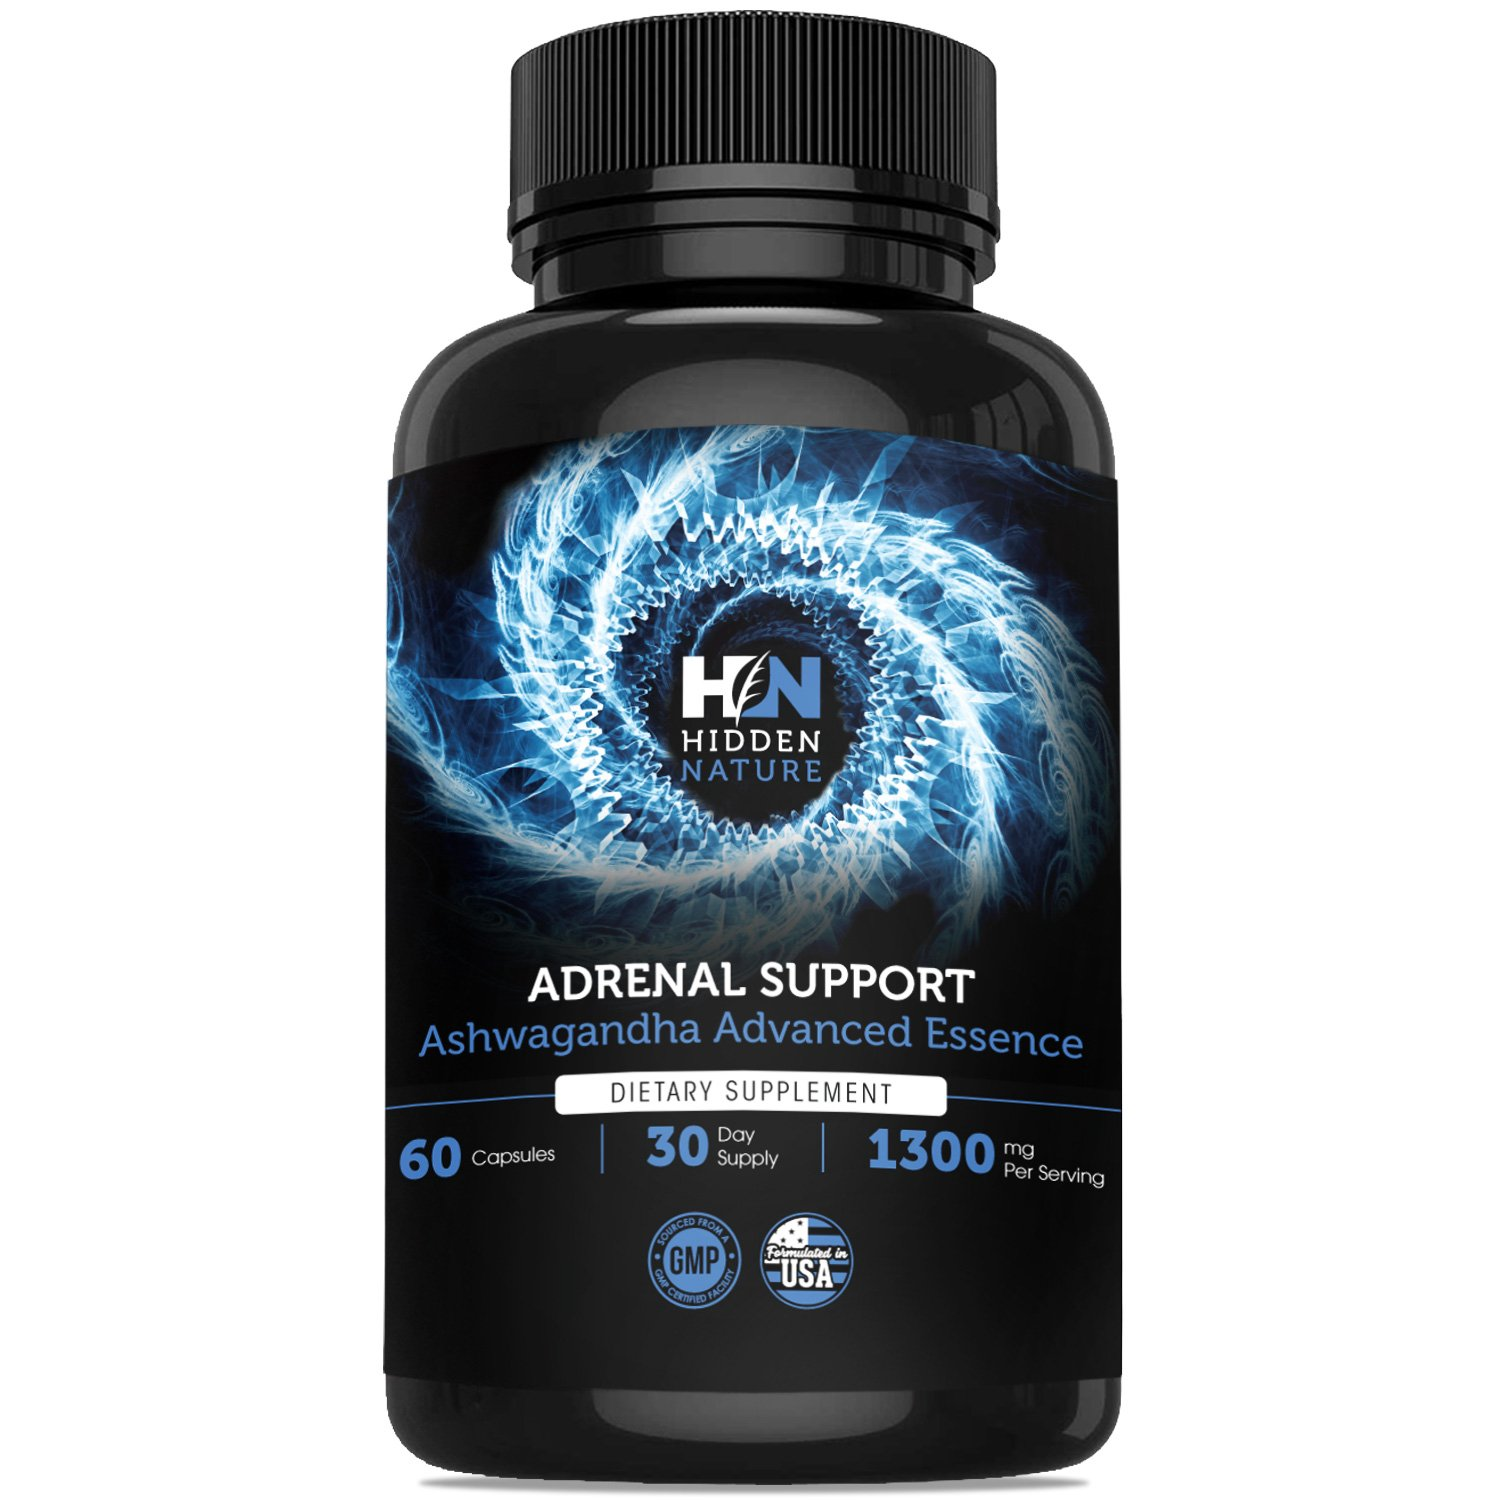 Adrenal Support & Cortisol Manager, 1300 mg, Best Adrenal Fatigue Supplement with Ashwagandha Rhodiola Rosea, Licorice Root Providing Anxiety Relief, Calm & Adrenal Health